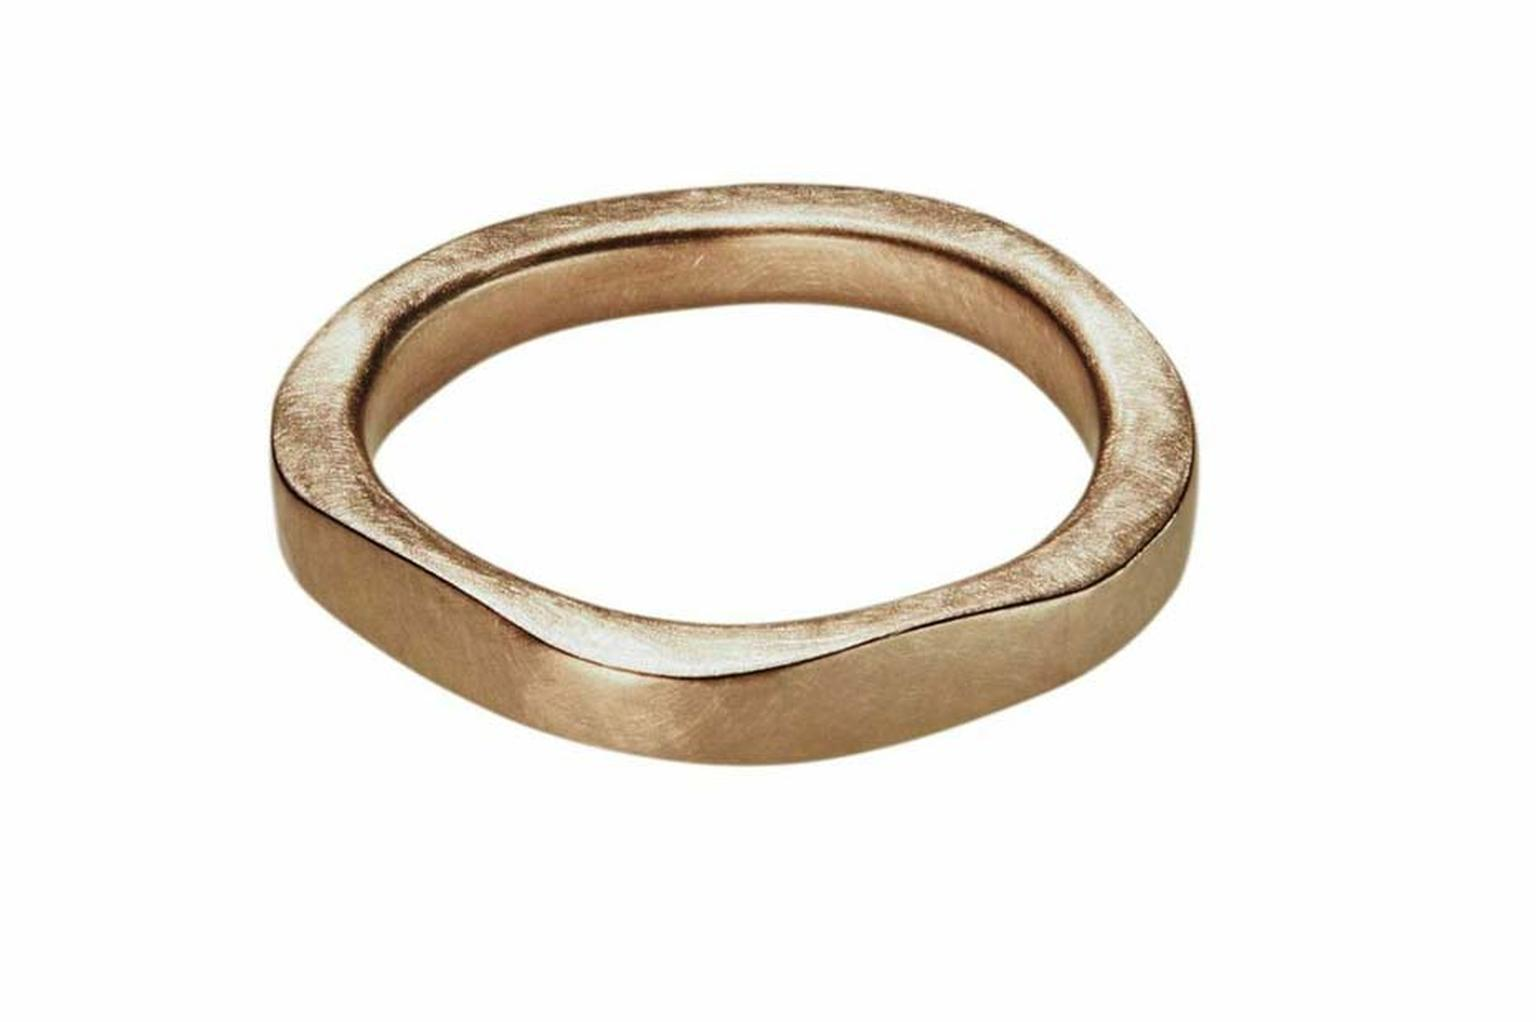 Cox + Power ethical wedding band in Fairtrade rose gold.